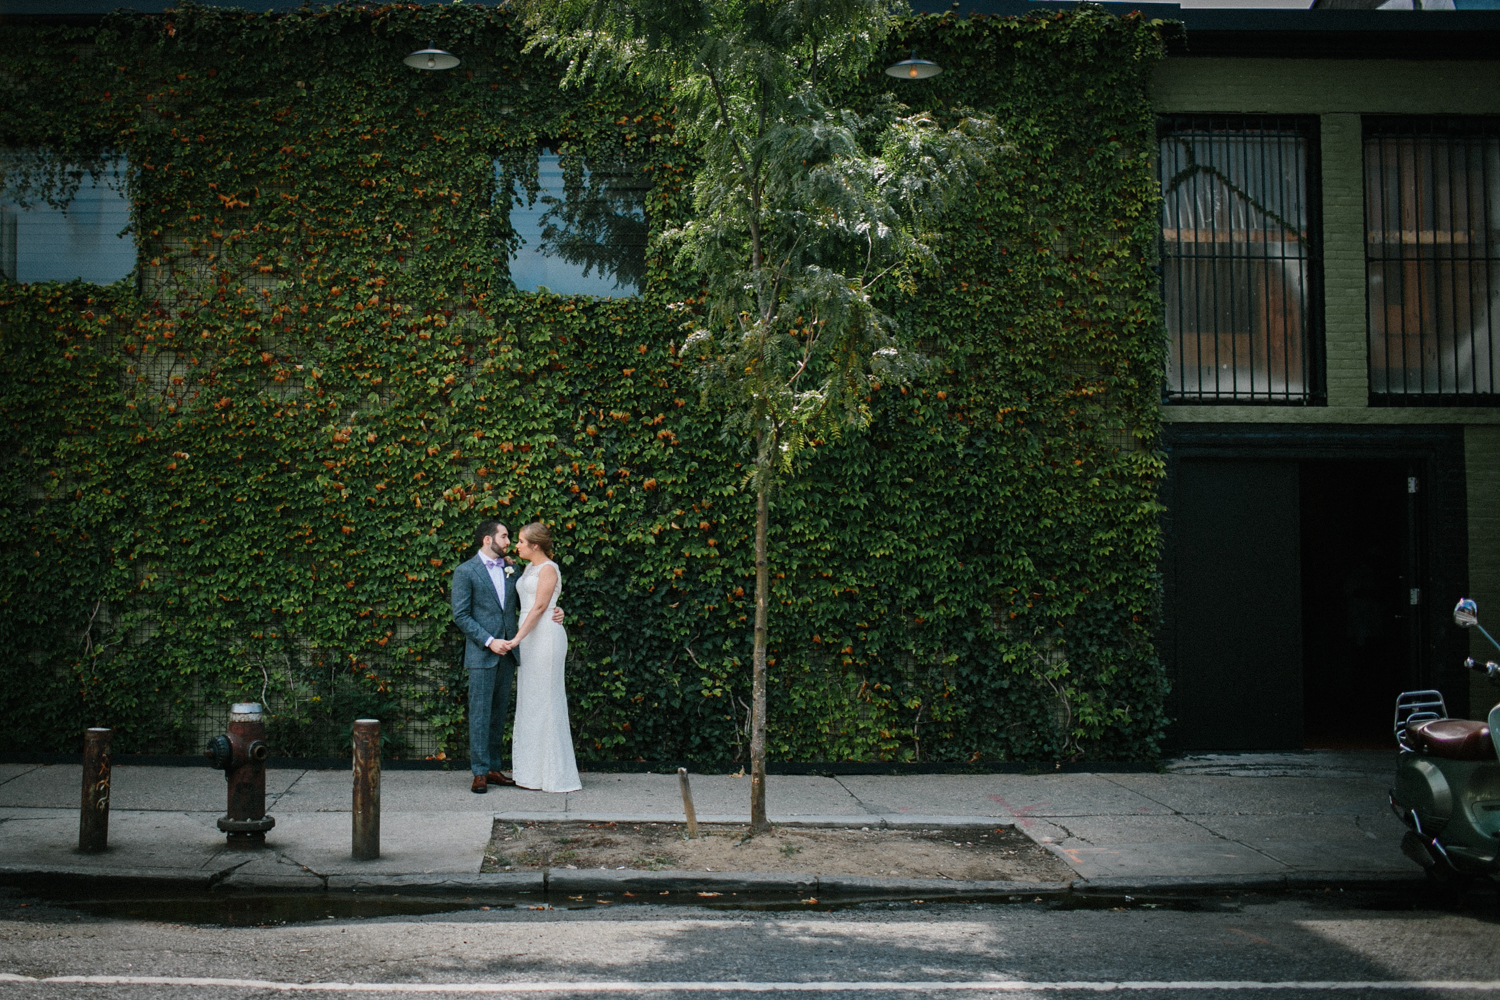 First Look at a Brooklyn Wedding